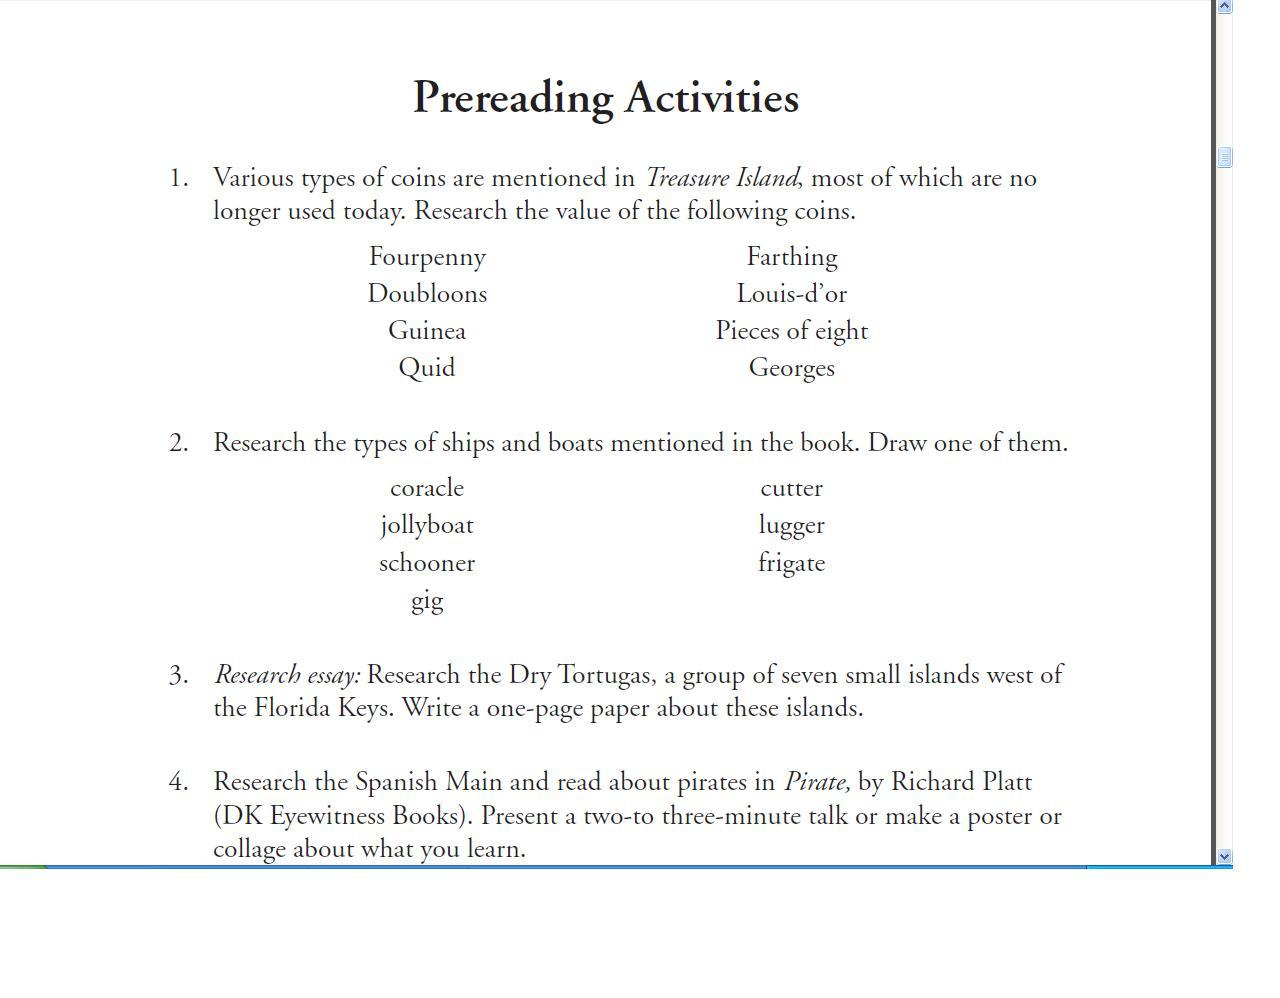 progeny press treasure island review the usual hem these kind of warm up activities were a great way to build up excitement for the study guide and book in our case treasure island happens to be a